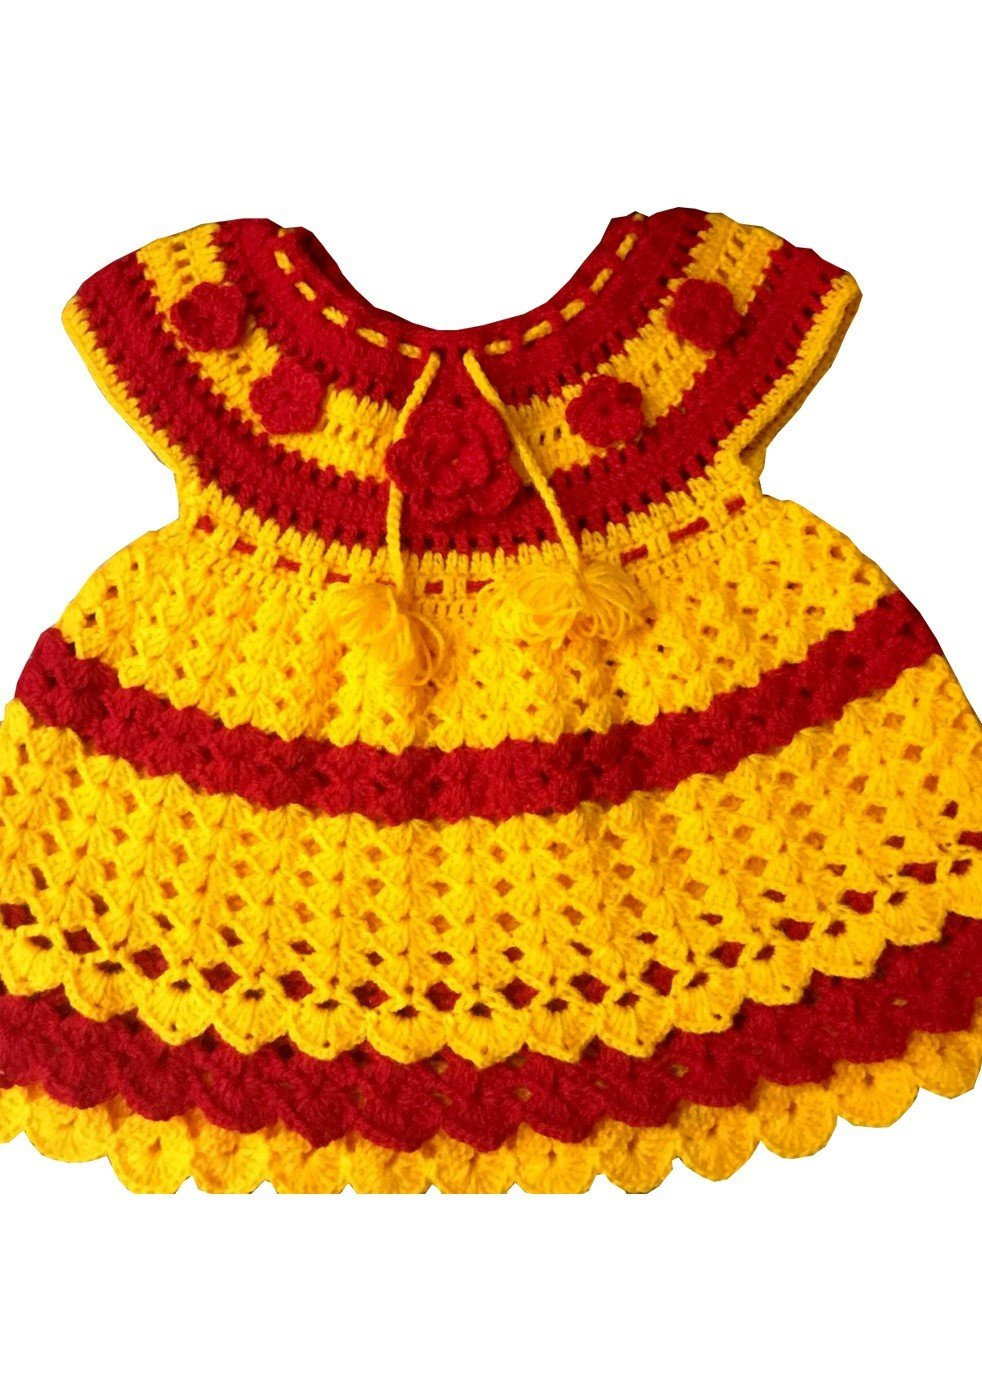 Hand Crocheted Yellow Red Baby Dress